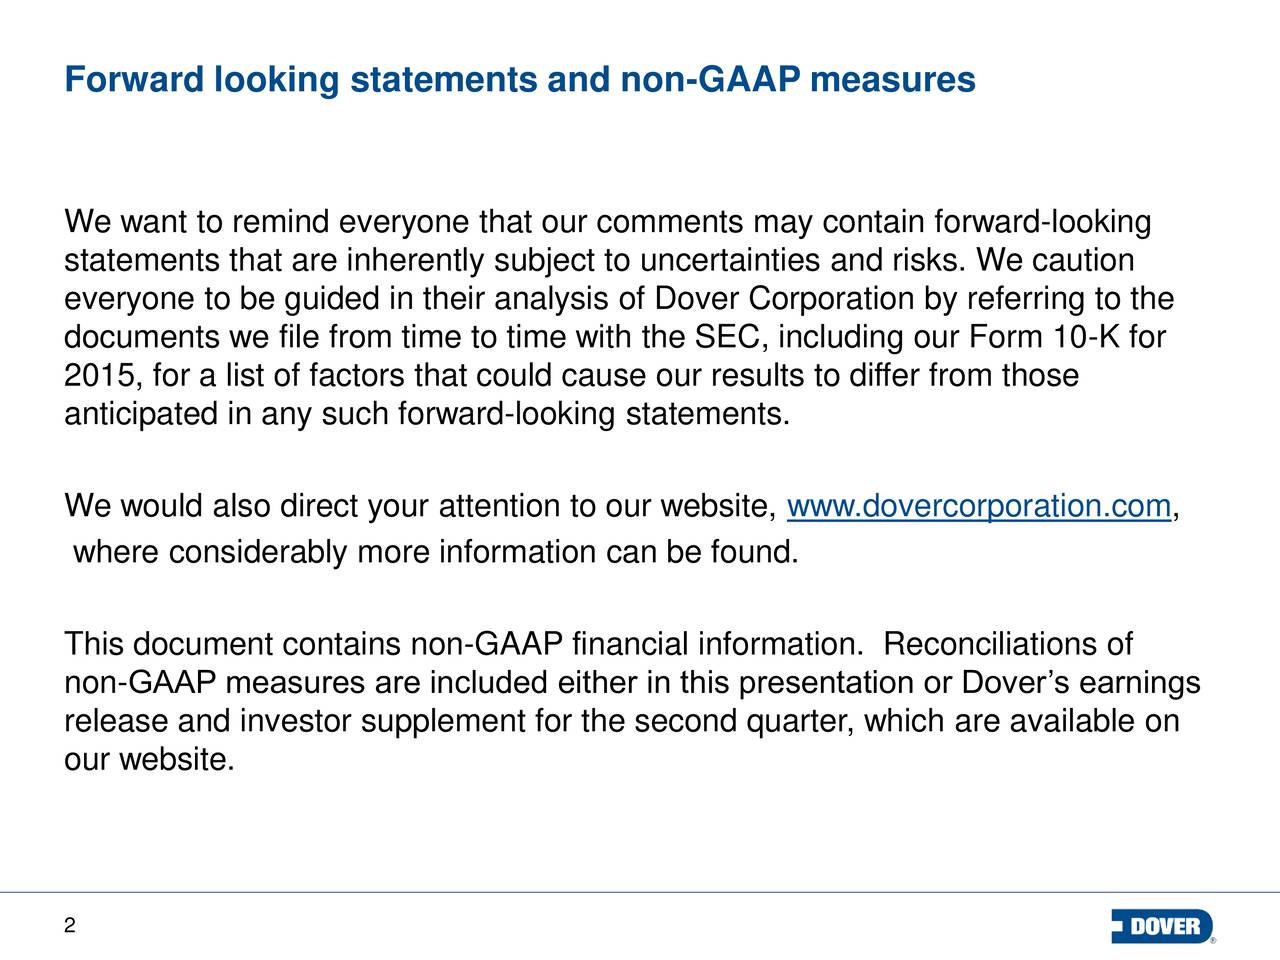 Forward looking statements and non-GAAP measures We want to remind everyone that our comments may contain forward-looking statements that are inherently subject to uncertainties and risks. We caution everyone to be guided in their analysis of Dover Corporation by referring to the documents we file from time to time with the SEC, including our Form 10-K for 2015, for a list of factors that could cause our results to differ from those anticipated in any such forward-looking statements. We would also direct your attention to our website, www.dovercorporation.com, where considerably more information can be found. This document contains non-GAAP financial information. Reconciliations of non-GAAP measures are included either in this presentation or Dovers earnings release and investor supplement for the second quarter, which are available on our website. 2